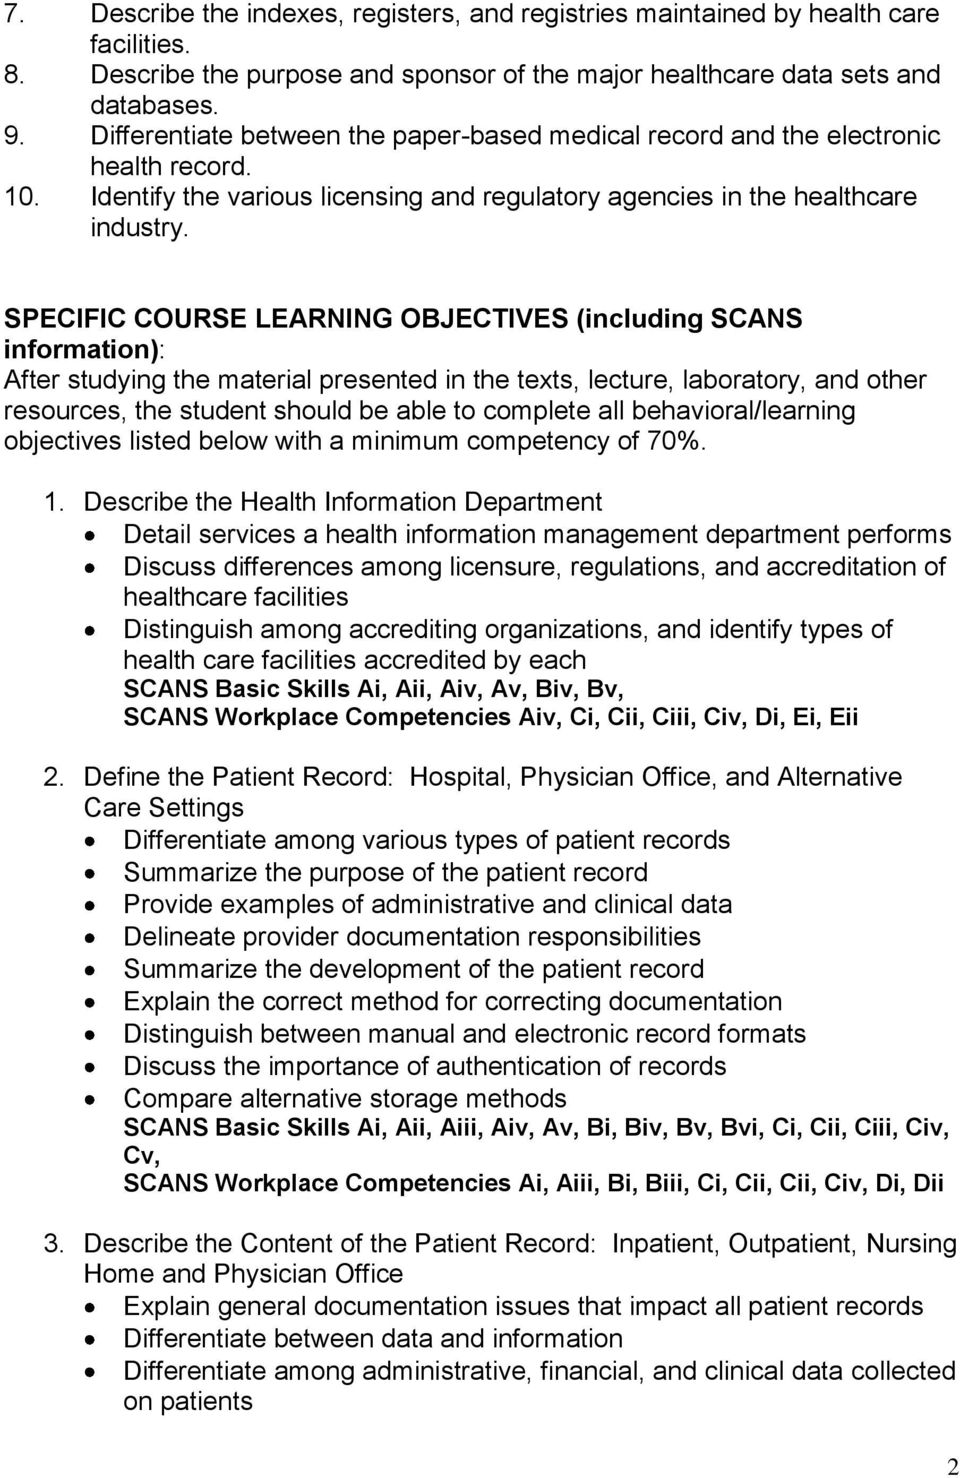 SPECIFIC COURSE LEARNING OBJECTIVES (including SCANS information): After studying the material presented in the texts, lecture, laboratory, and other resources, the student should be able to complete